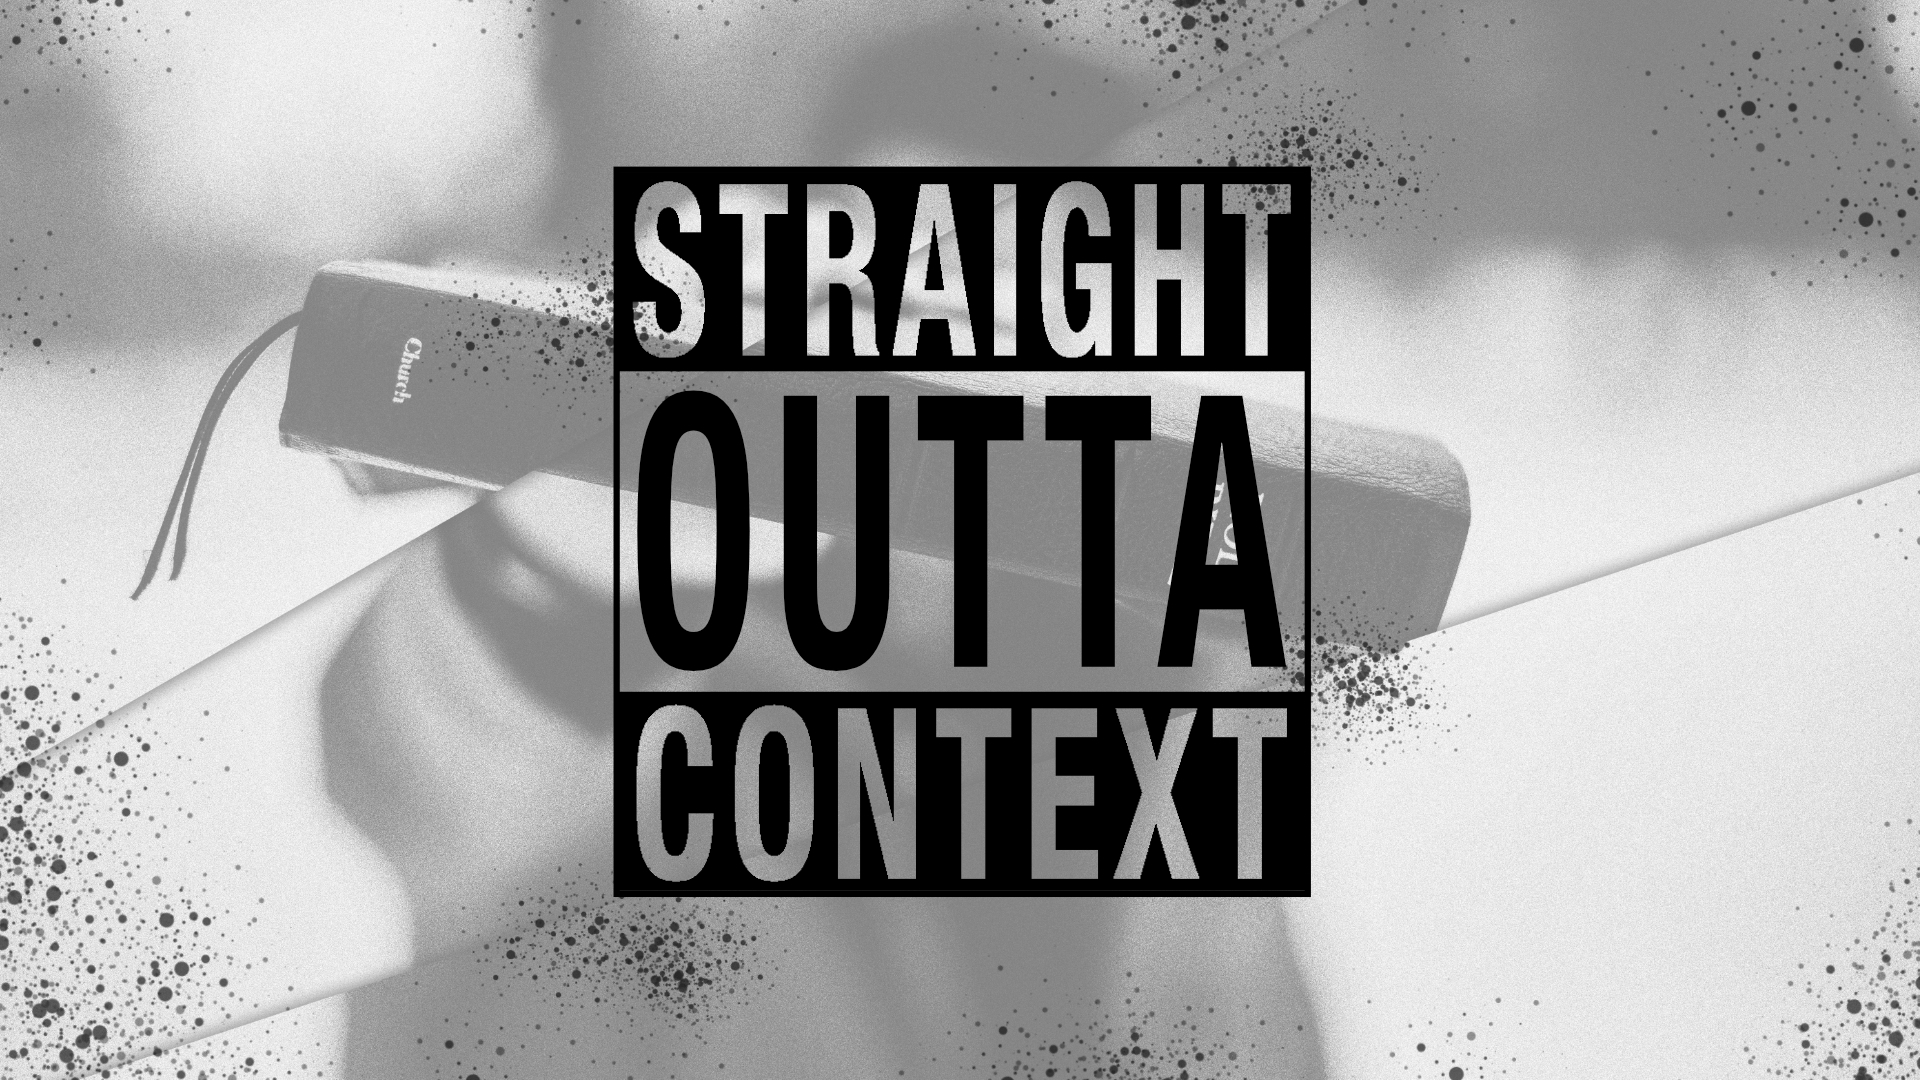 Straight Outta Context: Hard to Handle